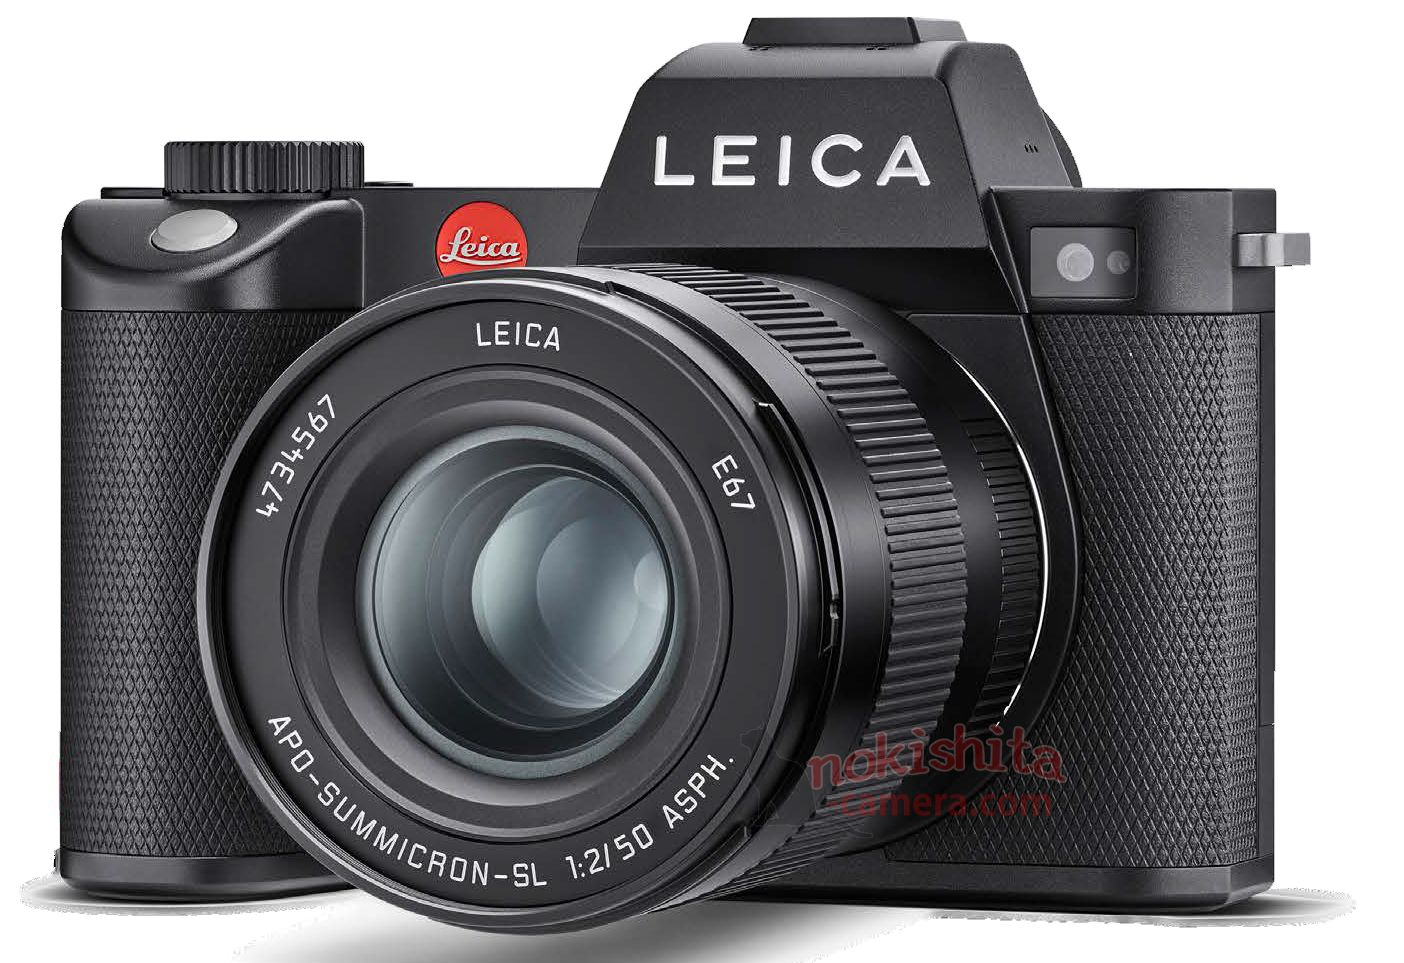 Rumored Leica SL2 camera specifications